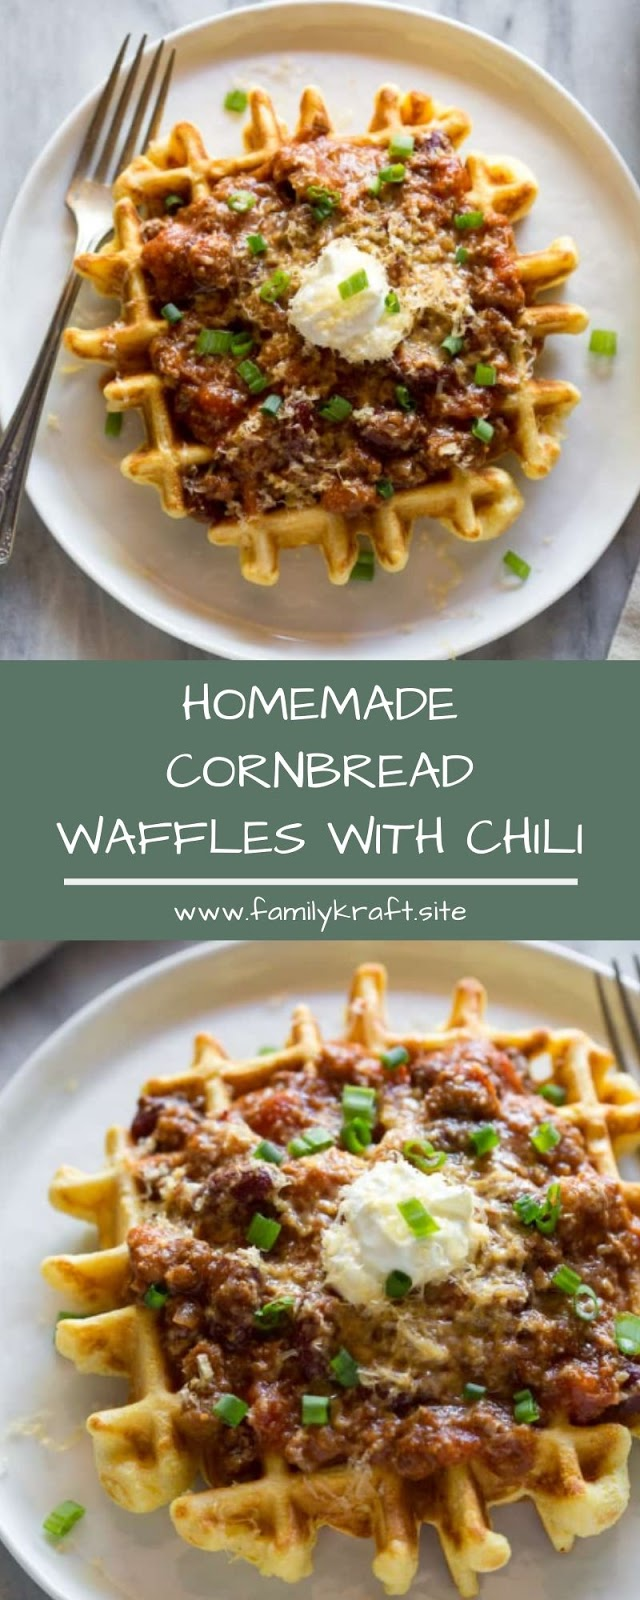 HOMEMADE CORNBREAD WAFFLES WITH CHILI